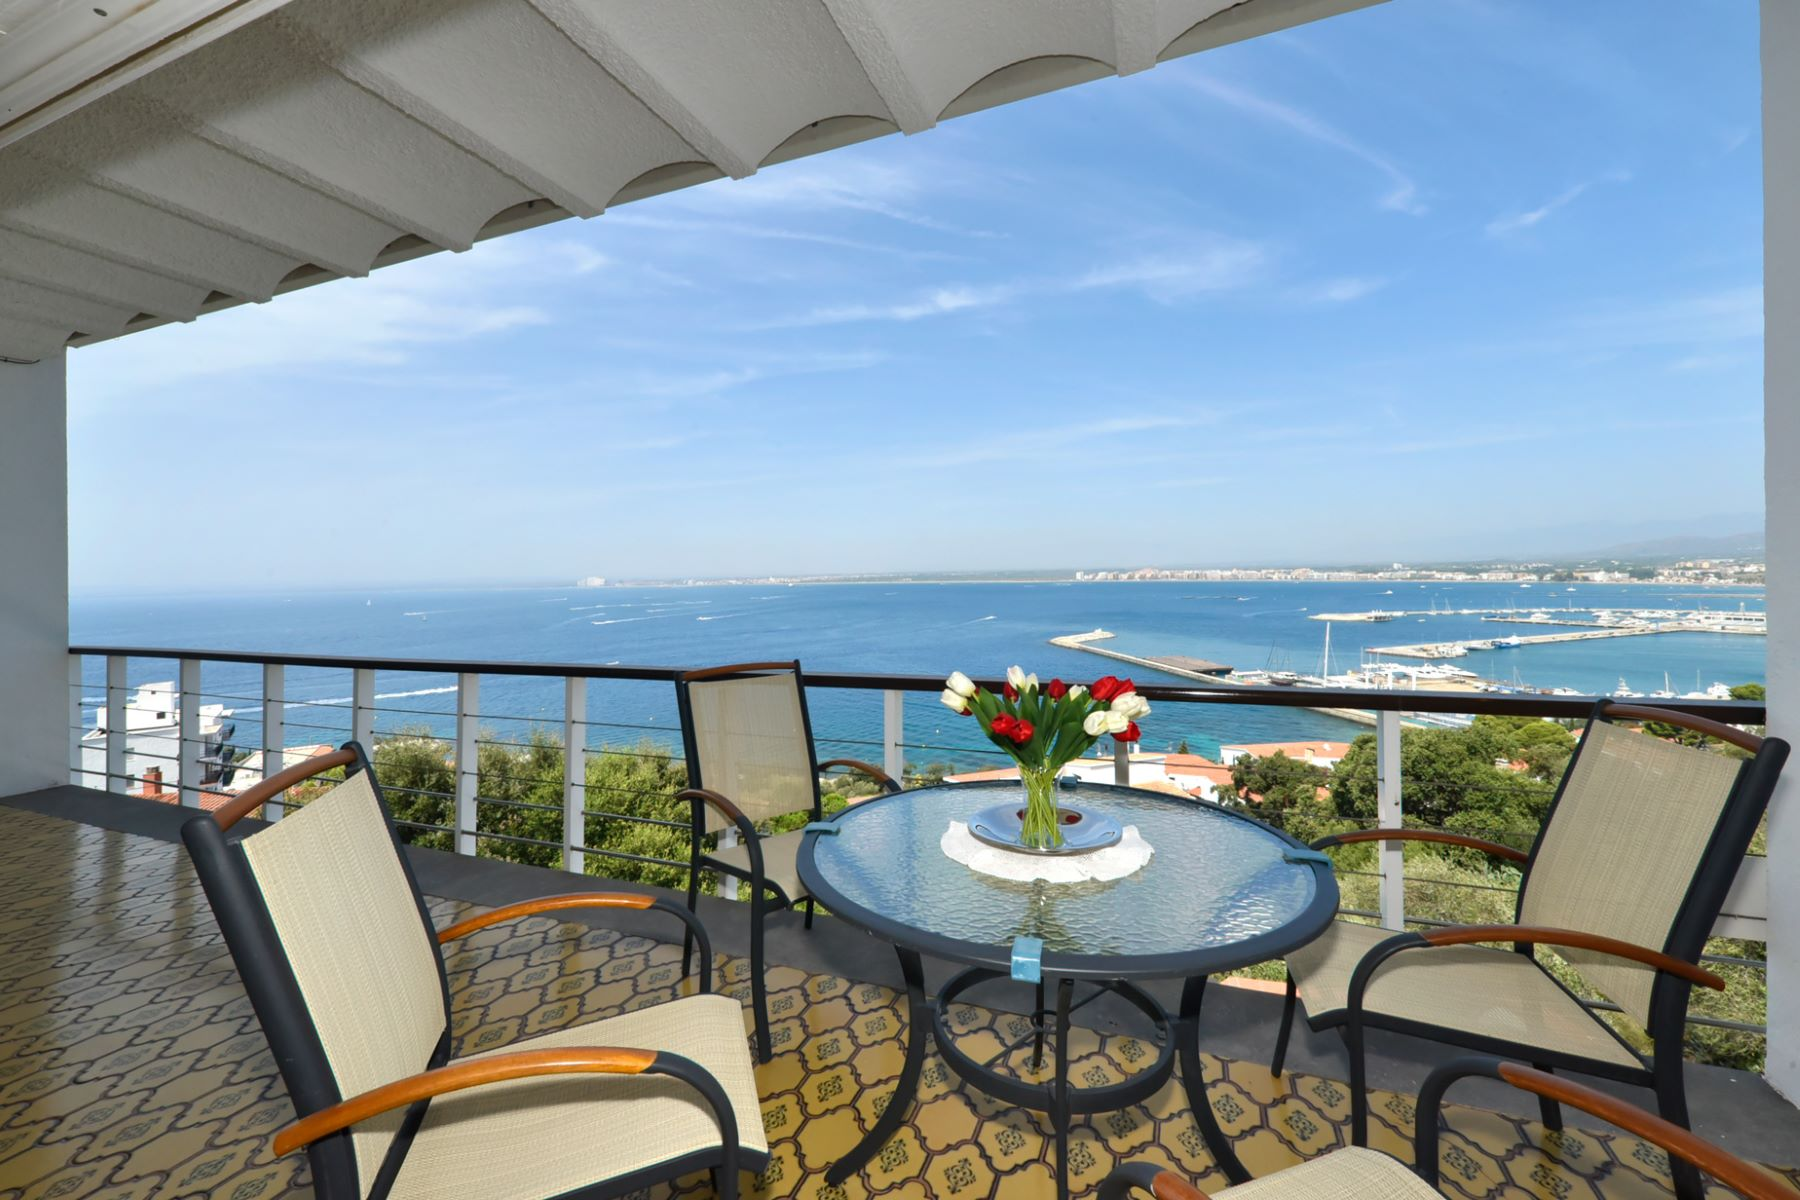 Single Family Home for Sale at Villa overlooking the marina of Roses Roses, Costa Brava, 17480 Spain